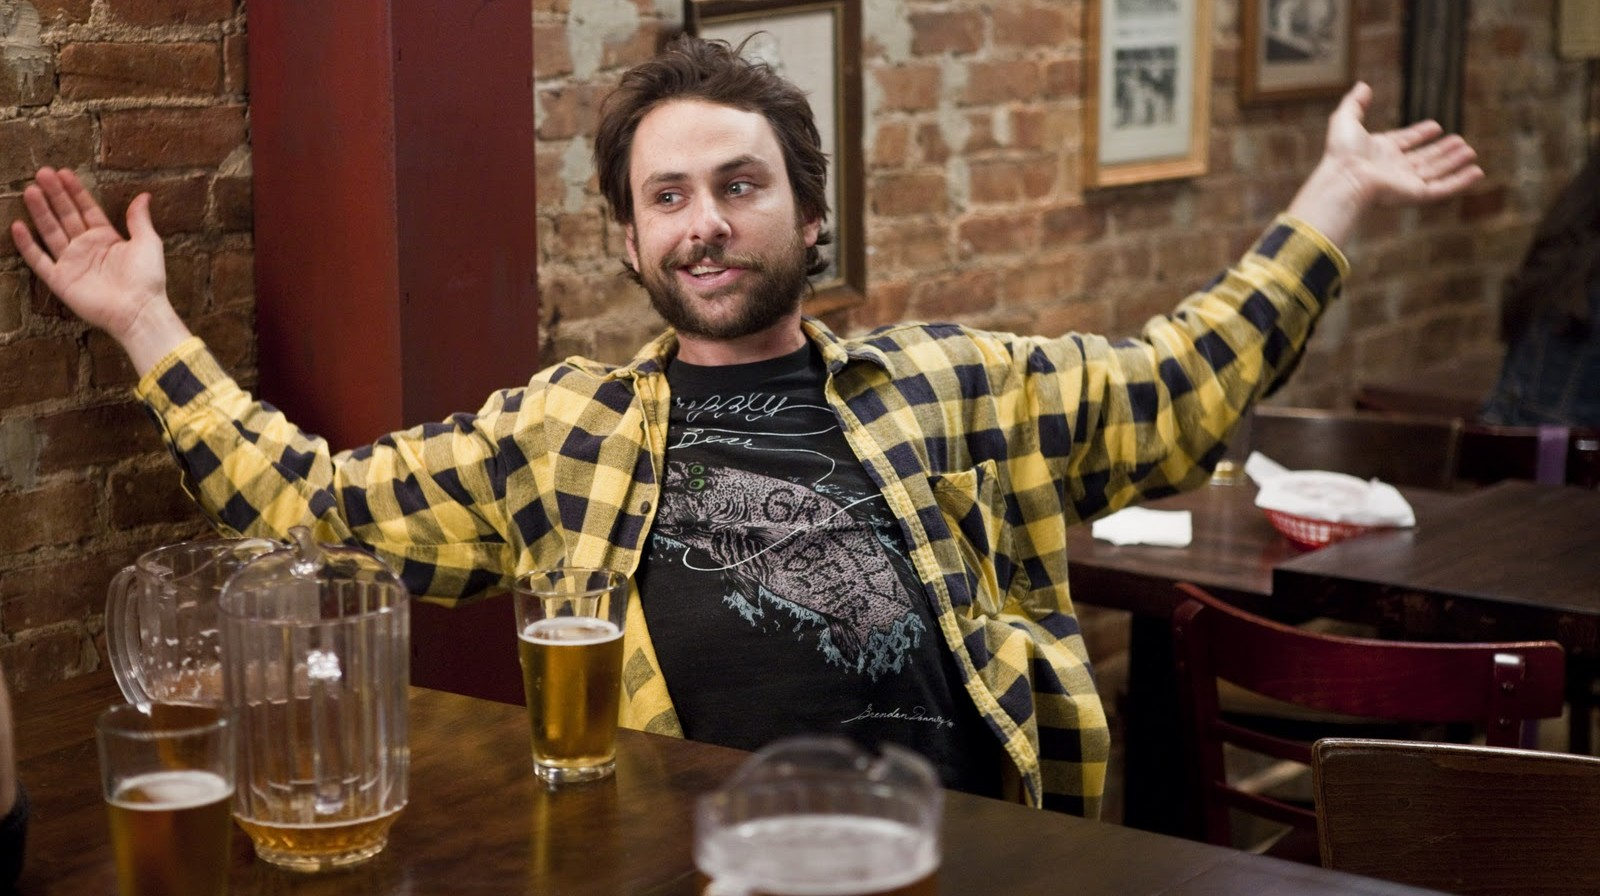 Charlie Day Tells Graduates To 'Not Give A SH*T'